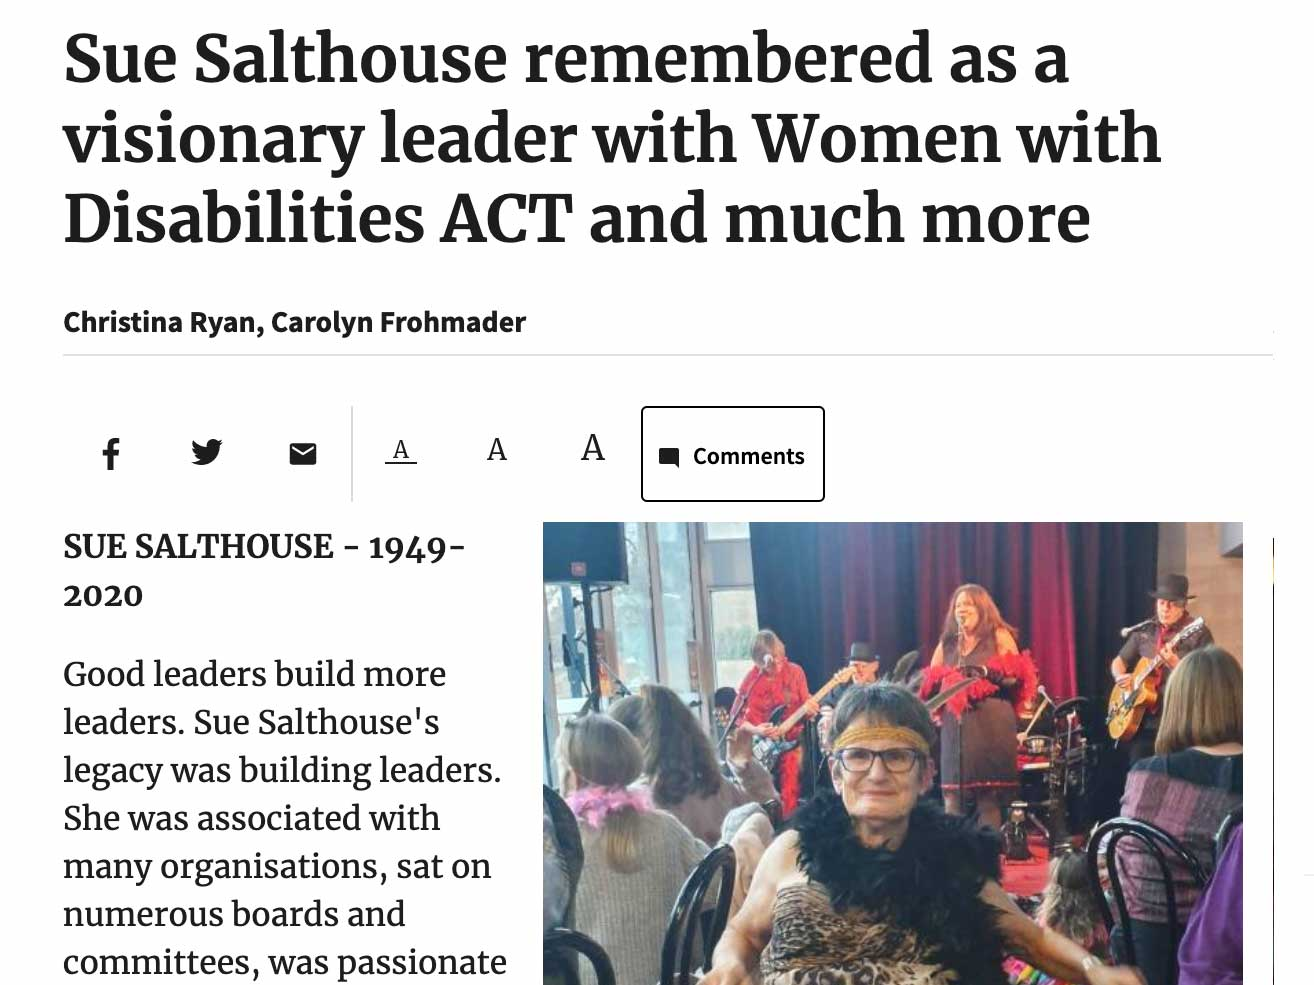 Article headline: Sue Salthouse remembered as a visionary leader with Women with Disabilities ACT and much more